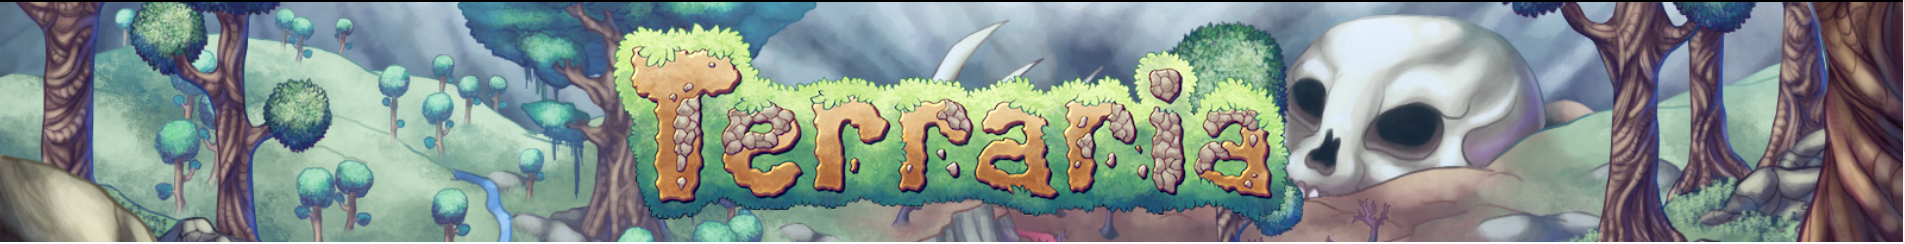 store banner.PNG